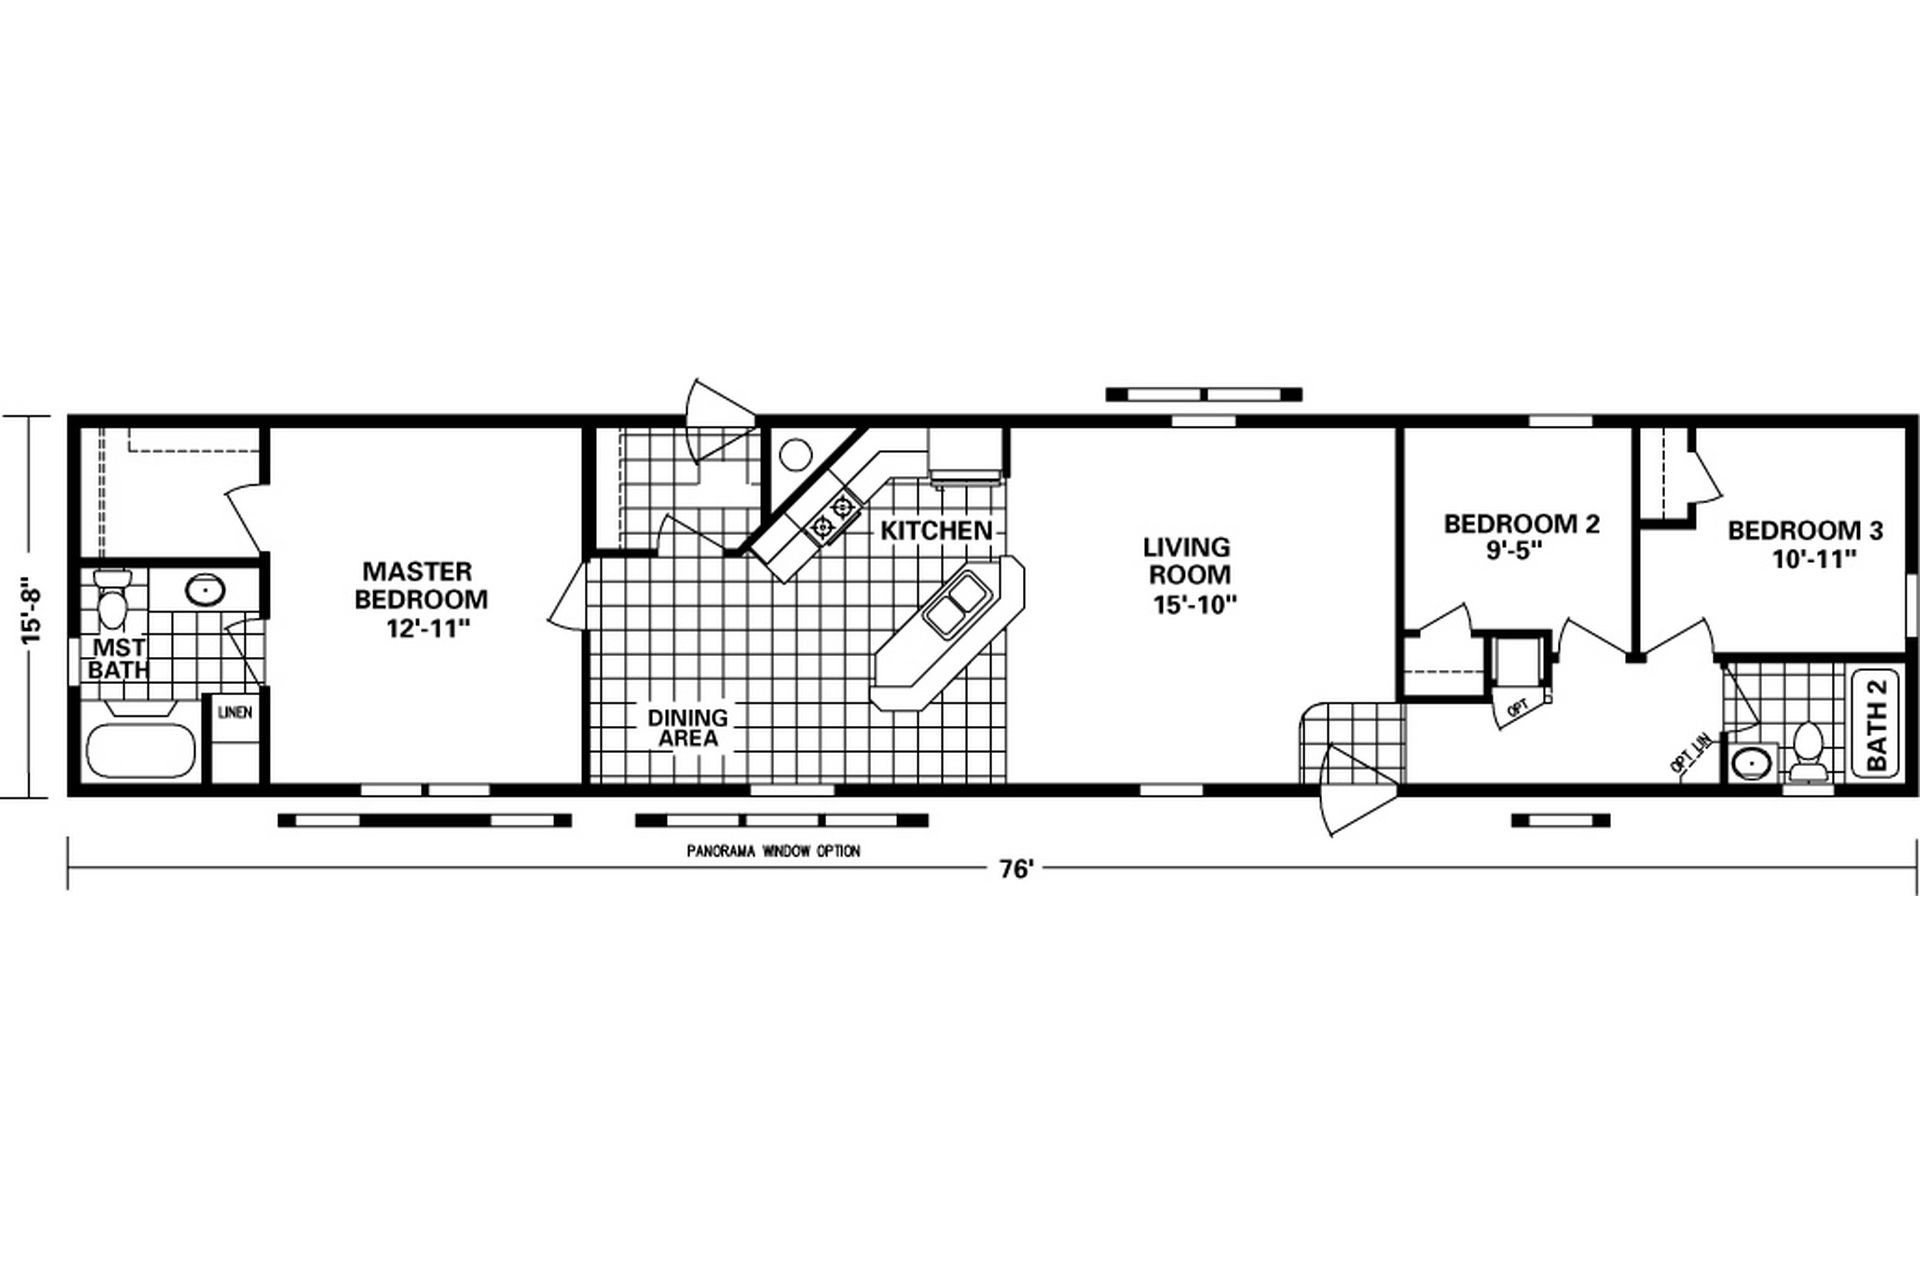 b109de690913c709760341b4bccef598 16 x 80 mobile home floor plans floor plans pinterest mobile Simple Wiring Schematics at gsmportal.co